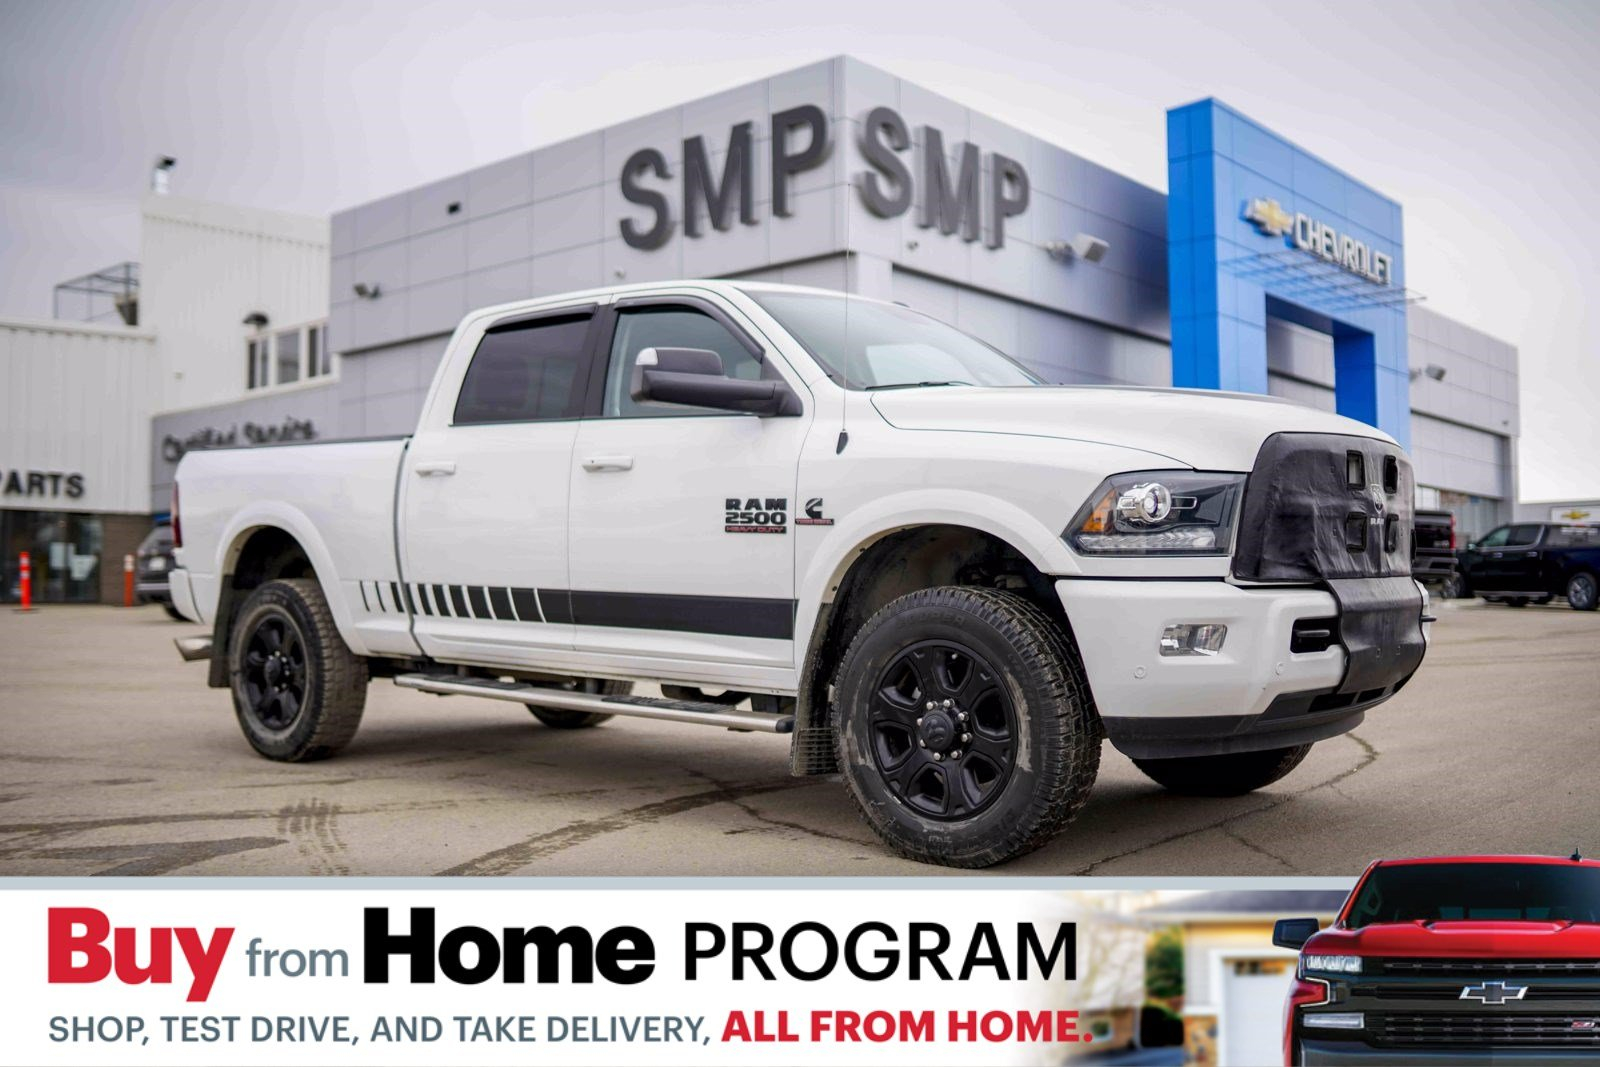 Certified Pre-Owned 2017 Ram 2500 Laramie - 6.7L Diesel, Leather, Htd/Cooled Seats, Sunroof